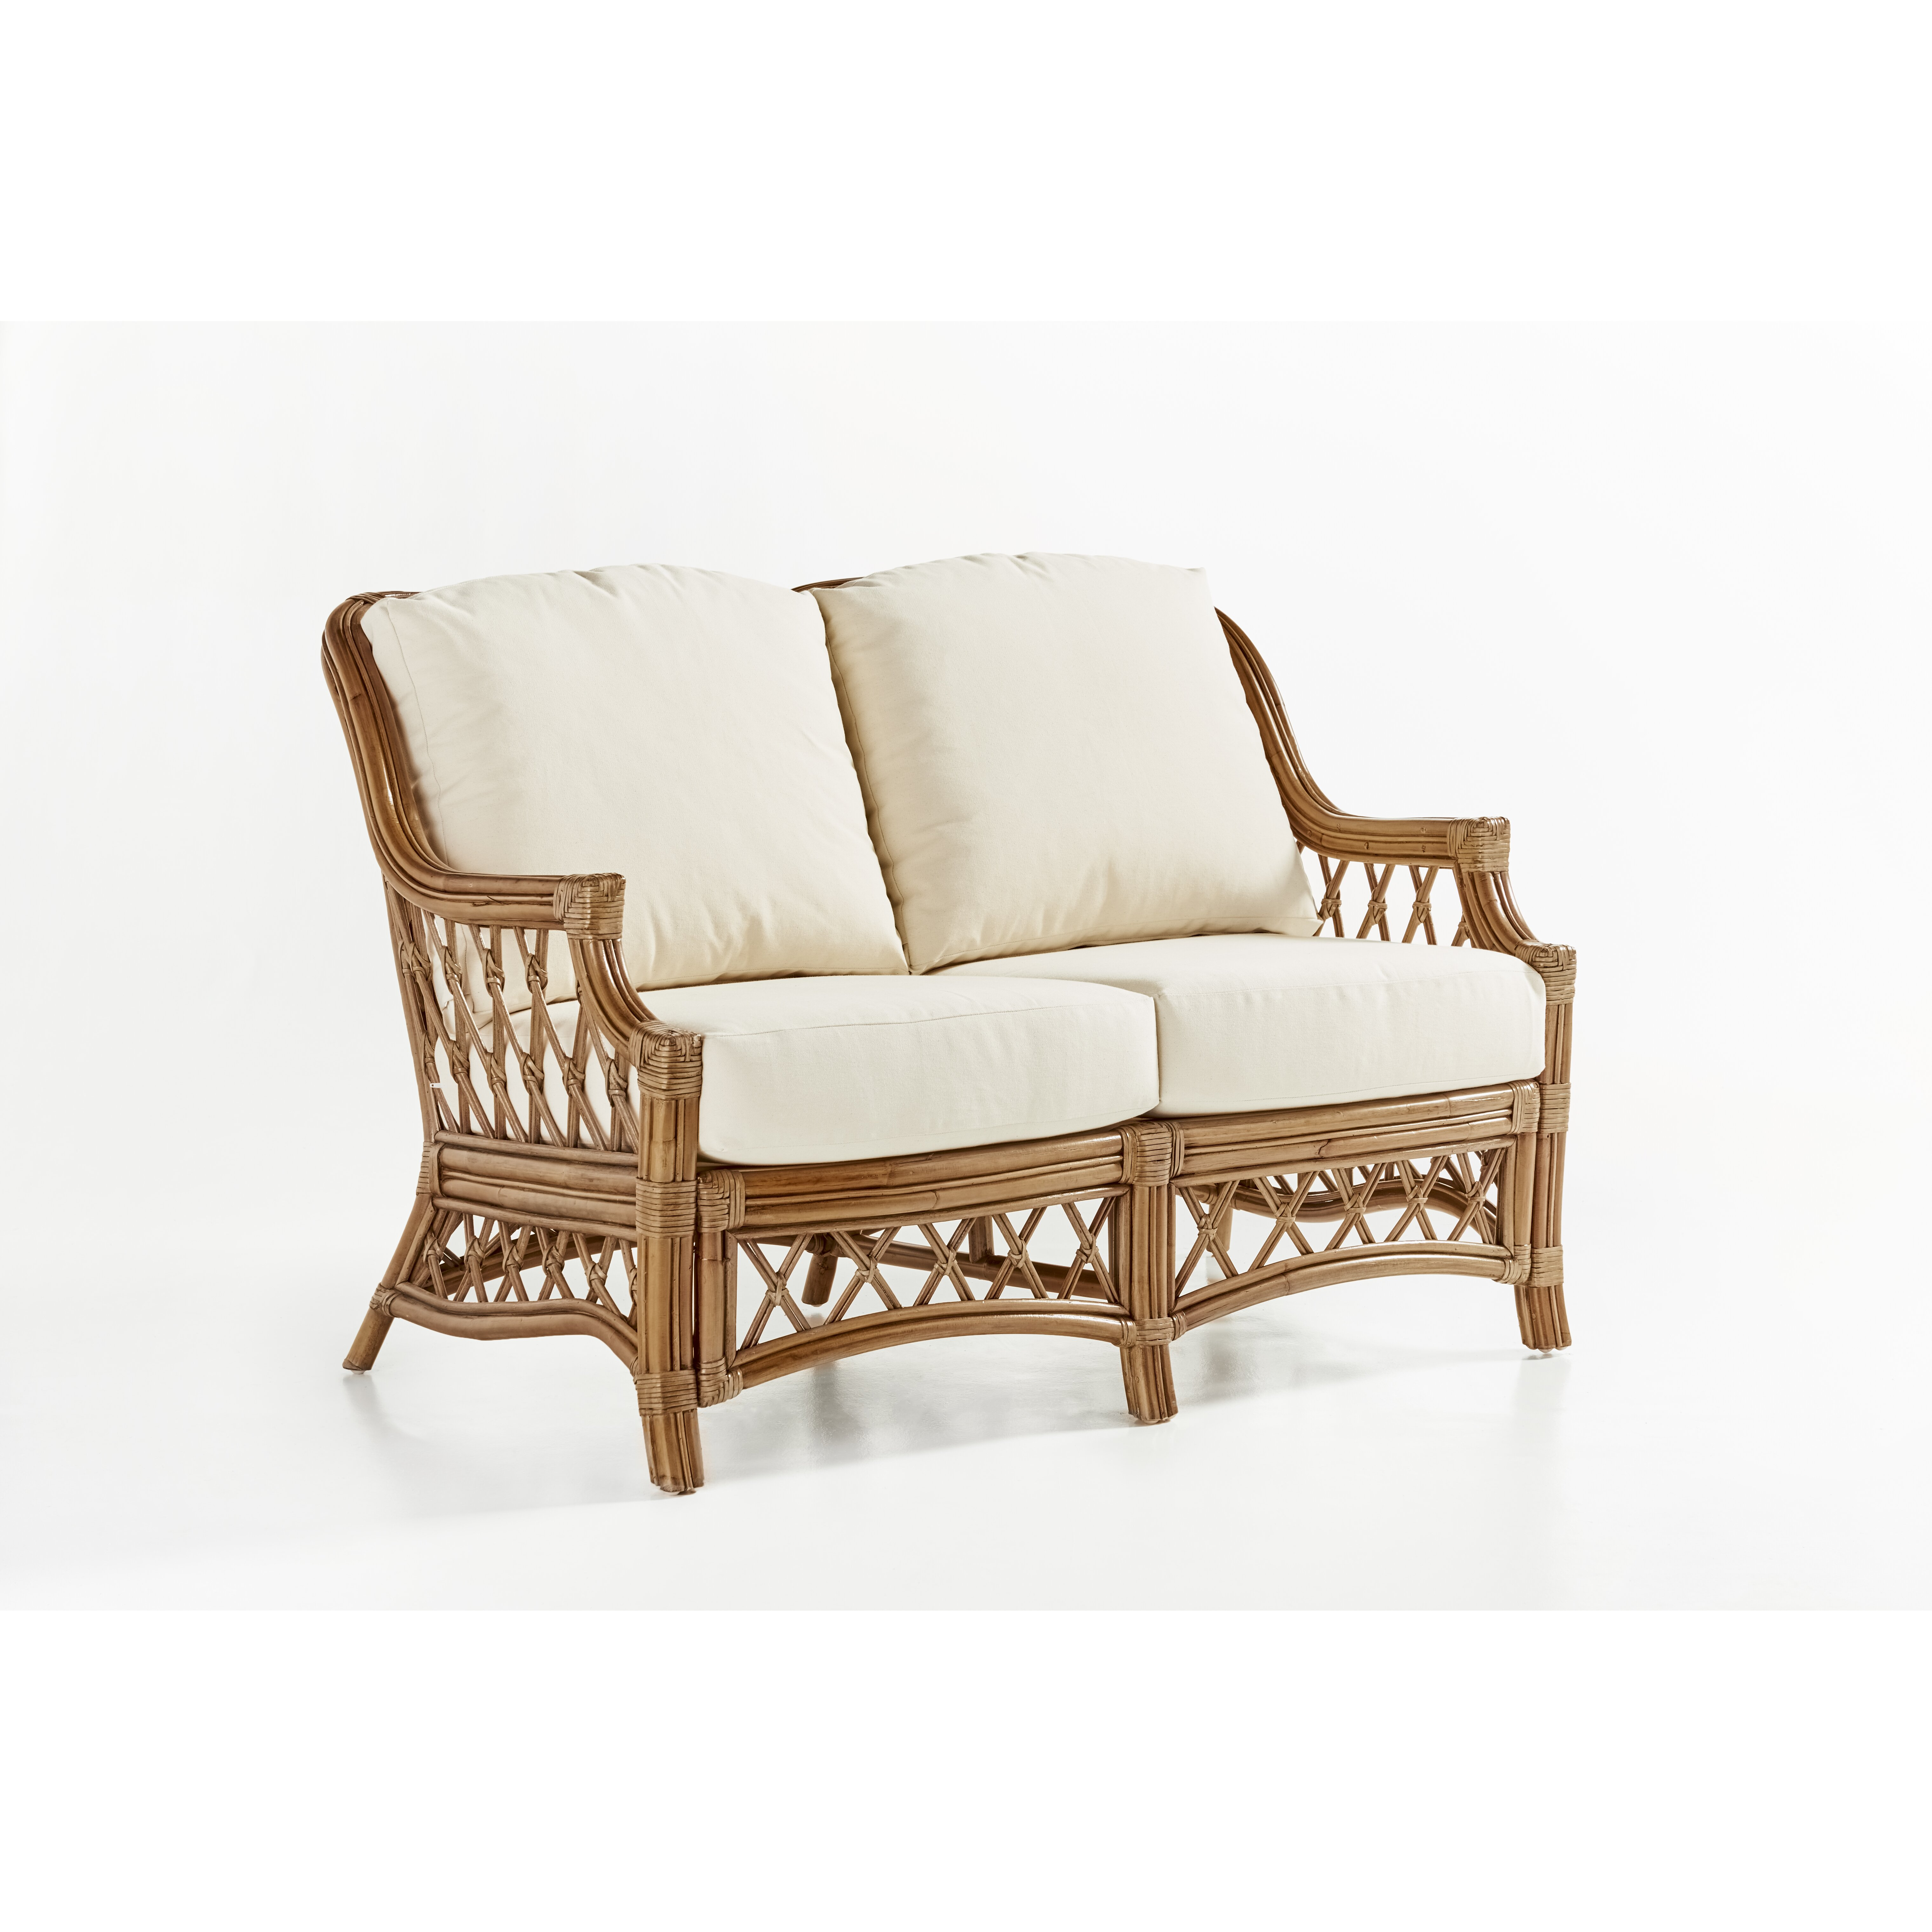 South sea rattan nadine loveseat Rattan loveseat